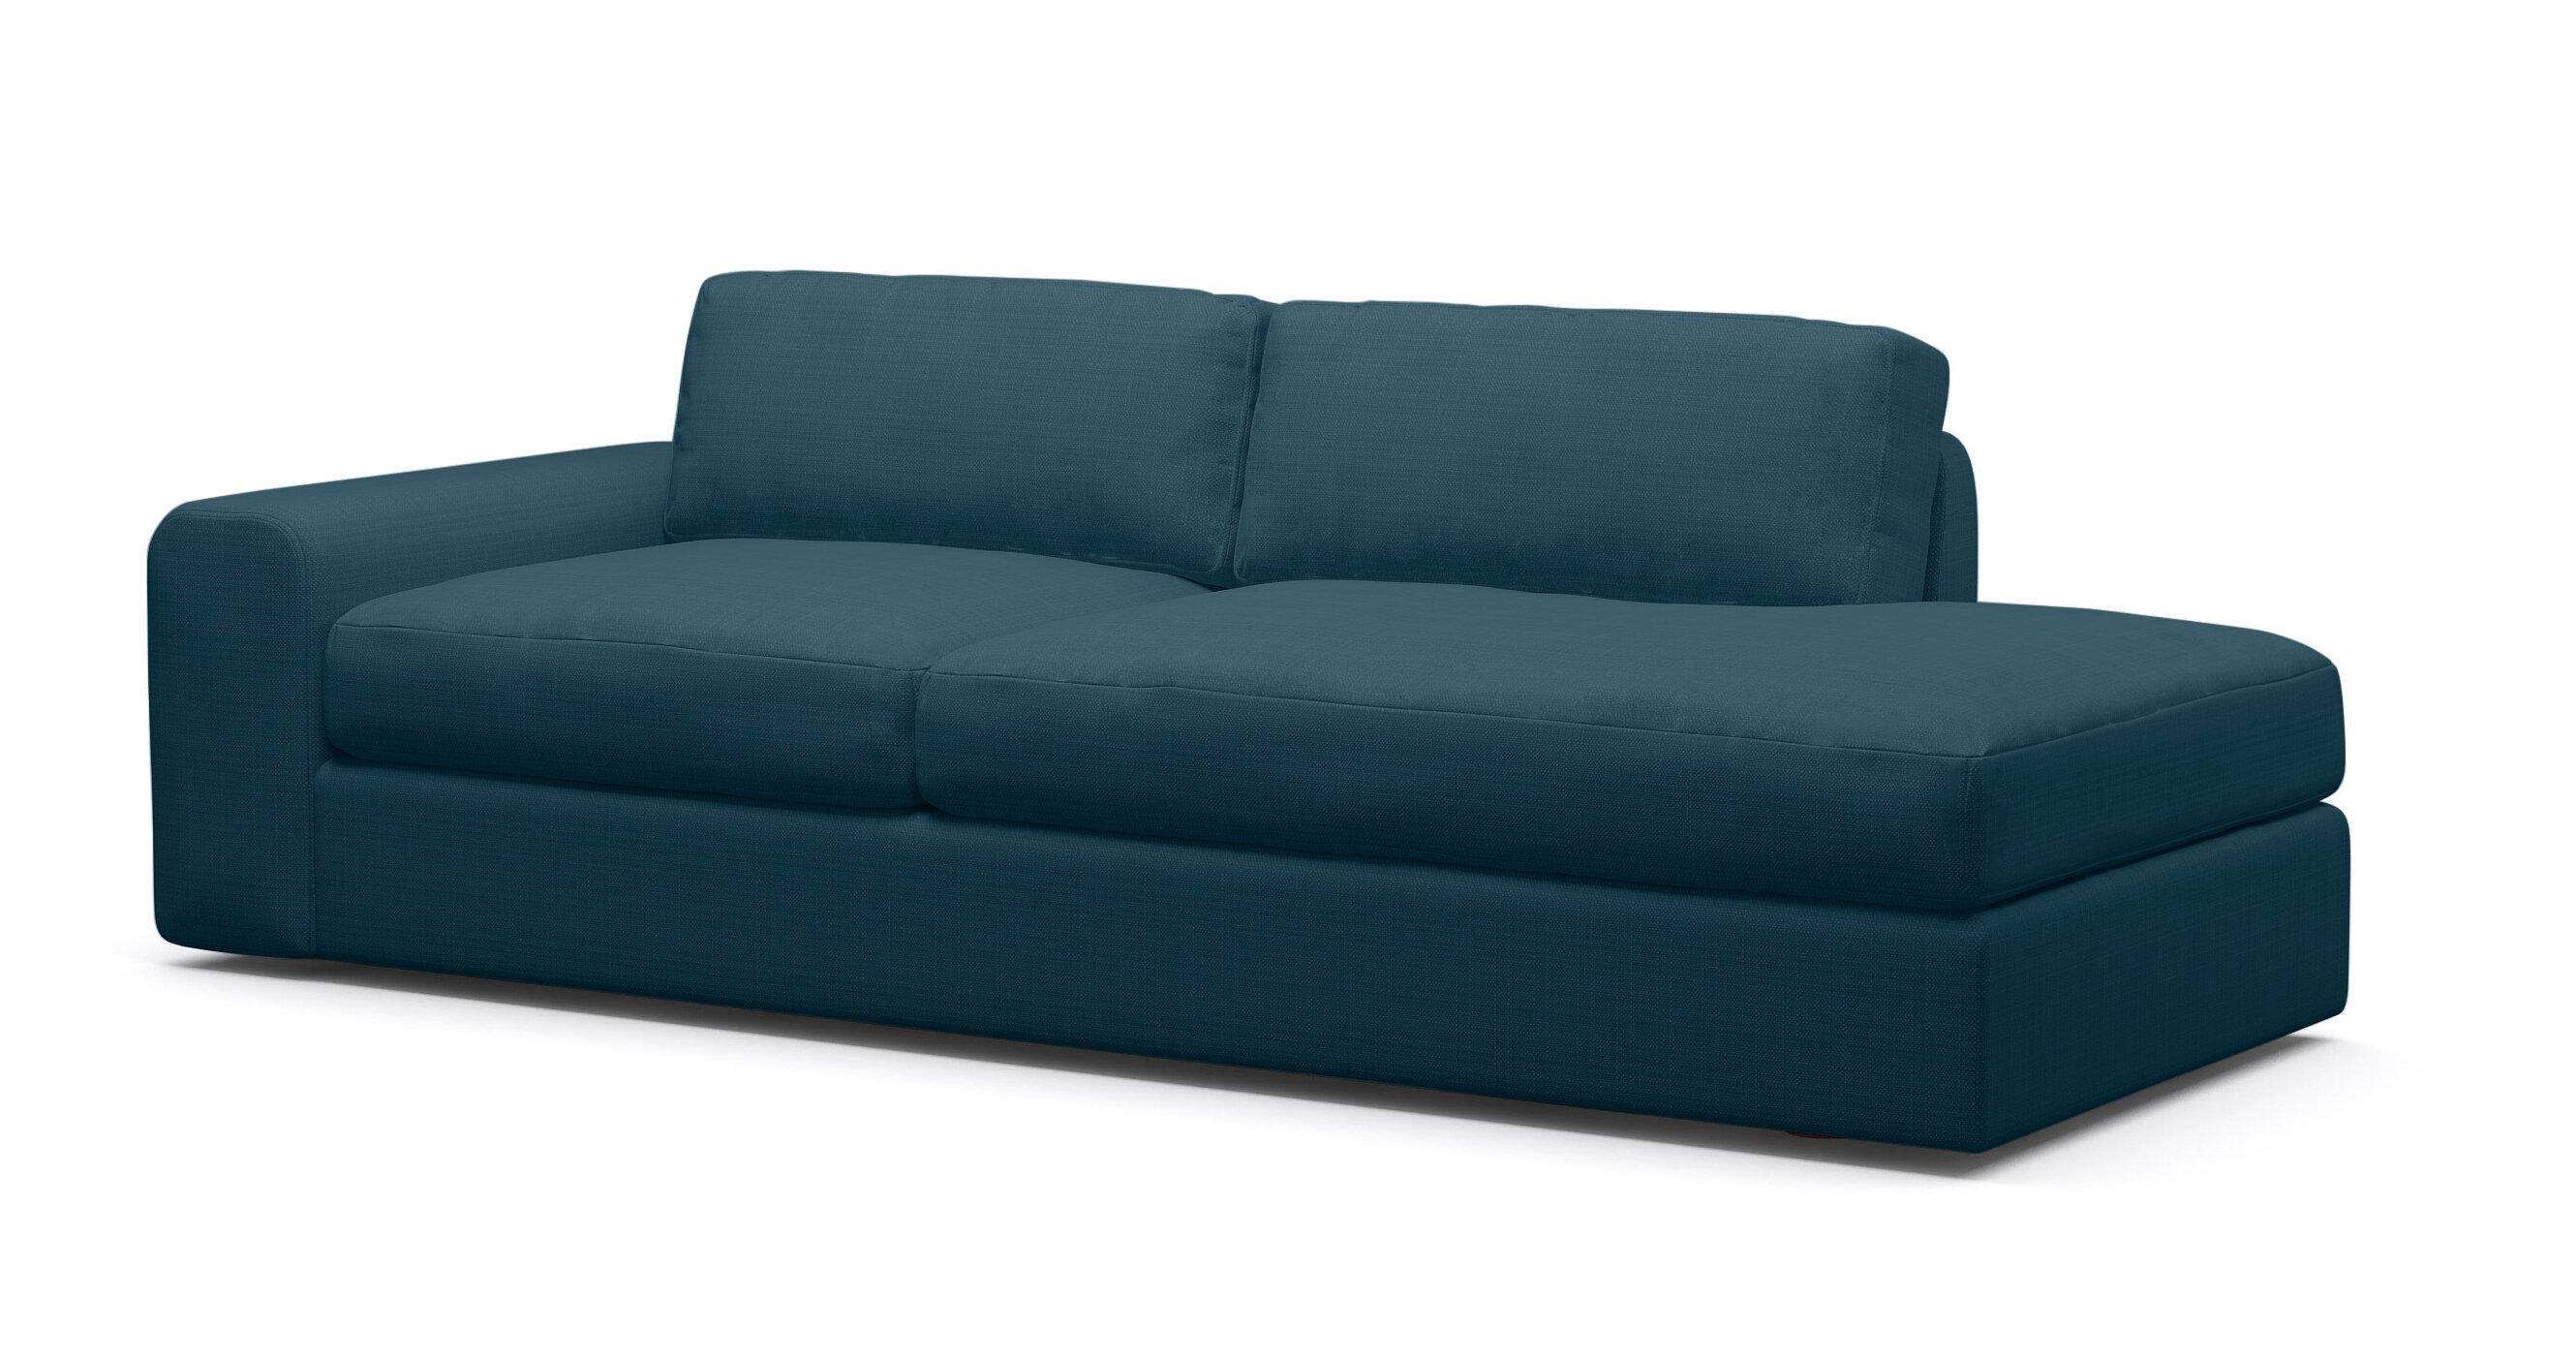 Incredible Couch Potato Sofa With Bumper Ncnpc Chair Design For Home Ncnpcorg